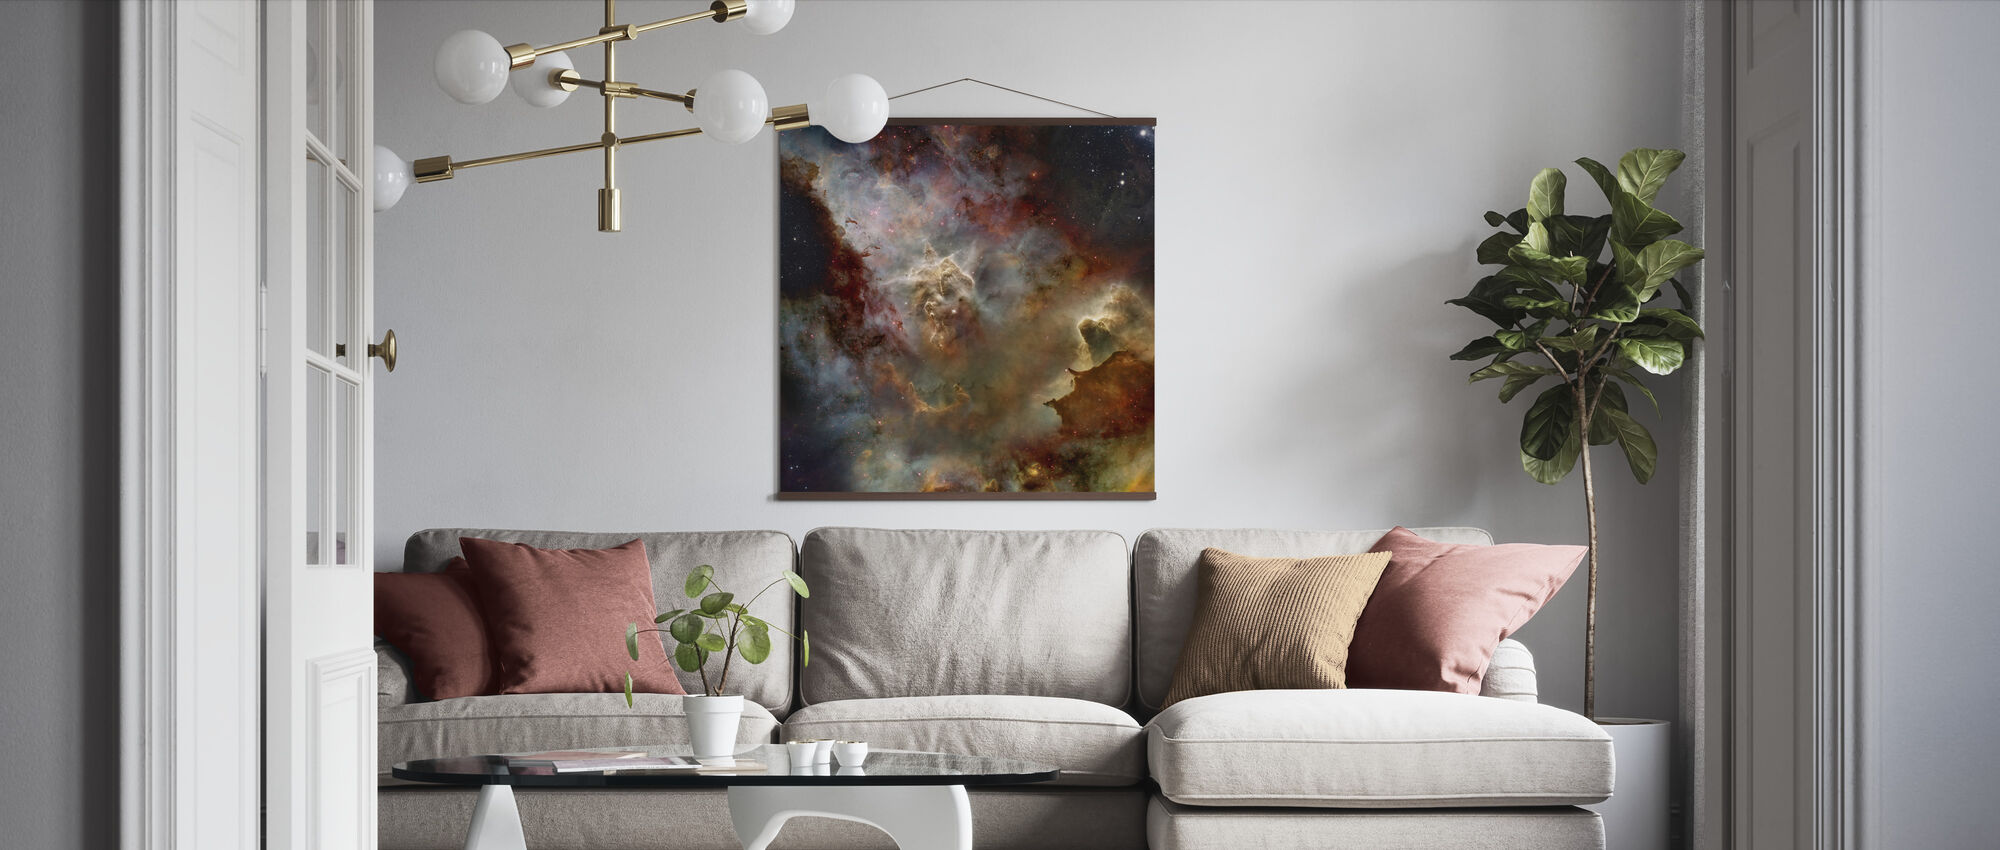 Deep Space Nebula - Poster - Living Room